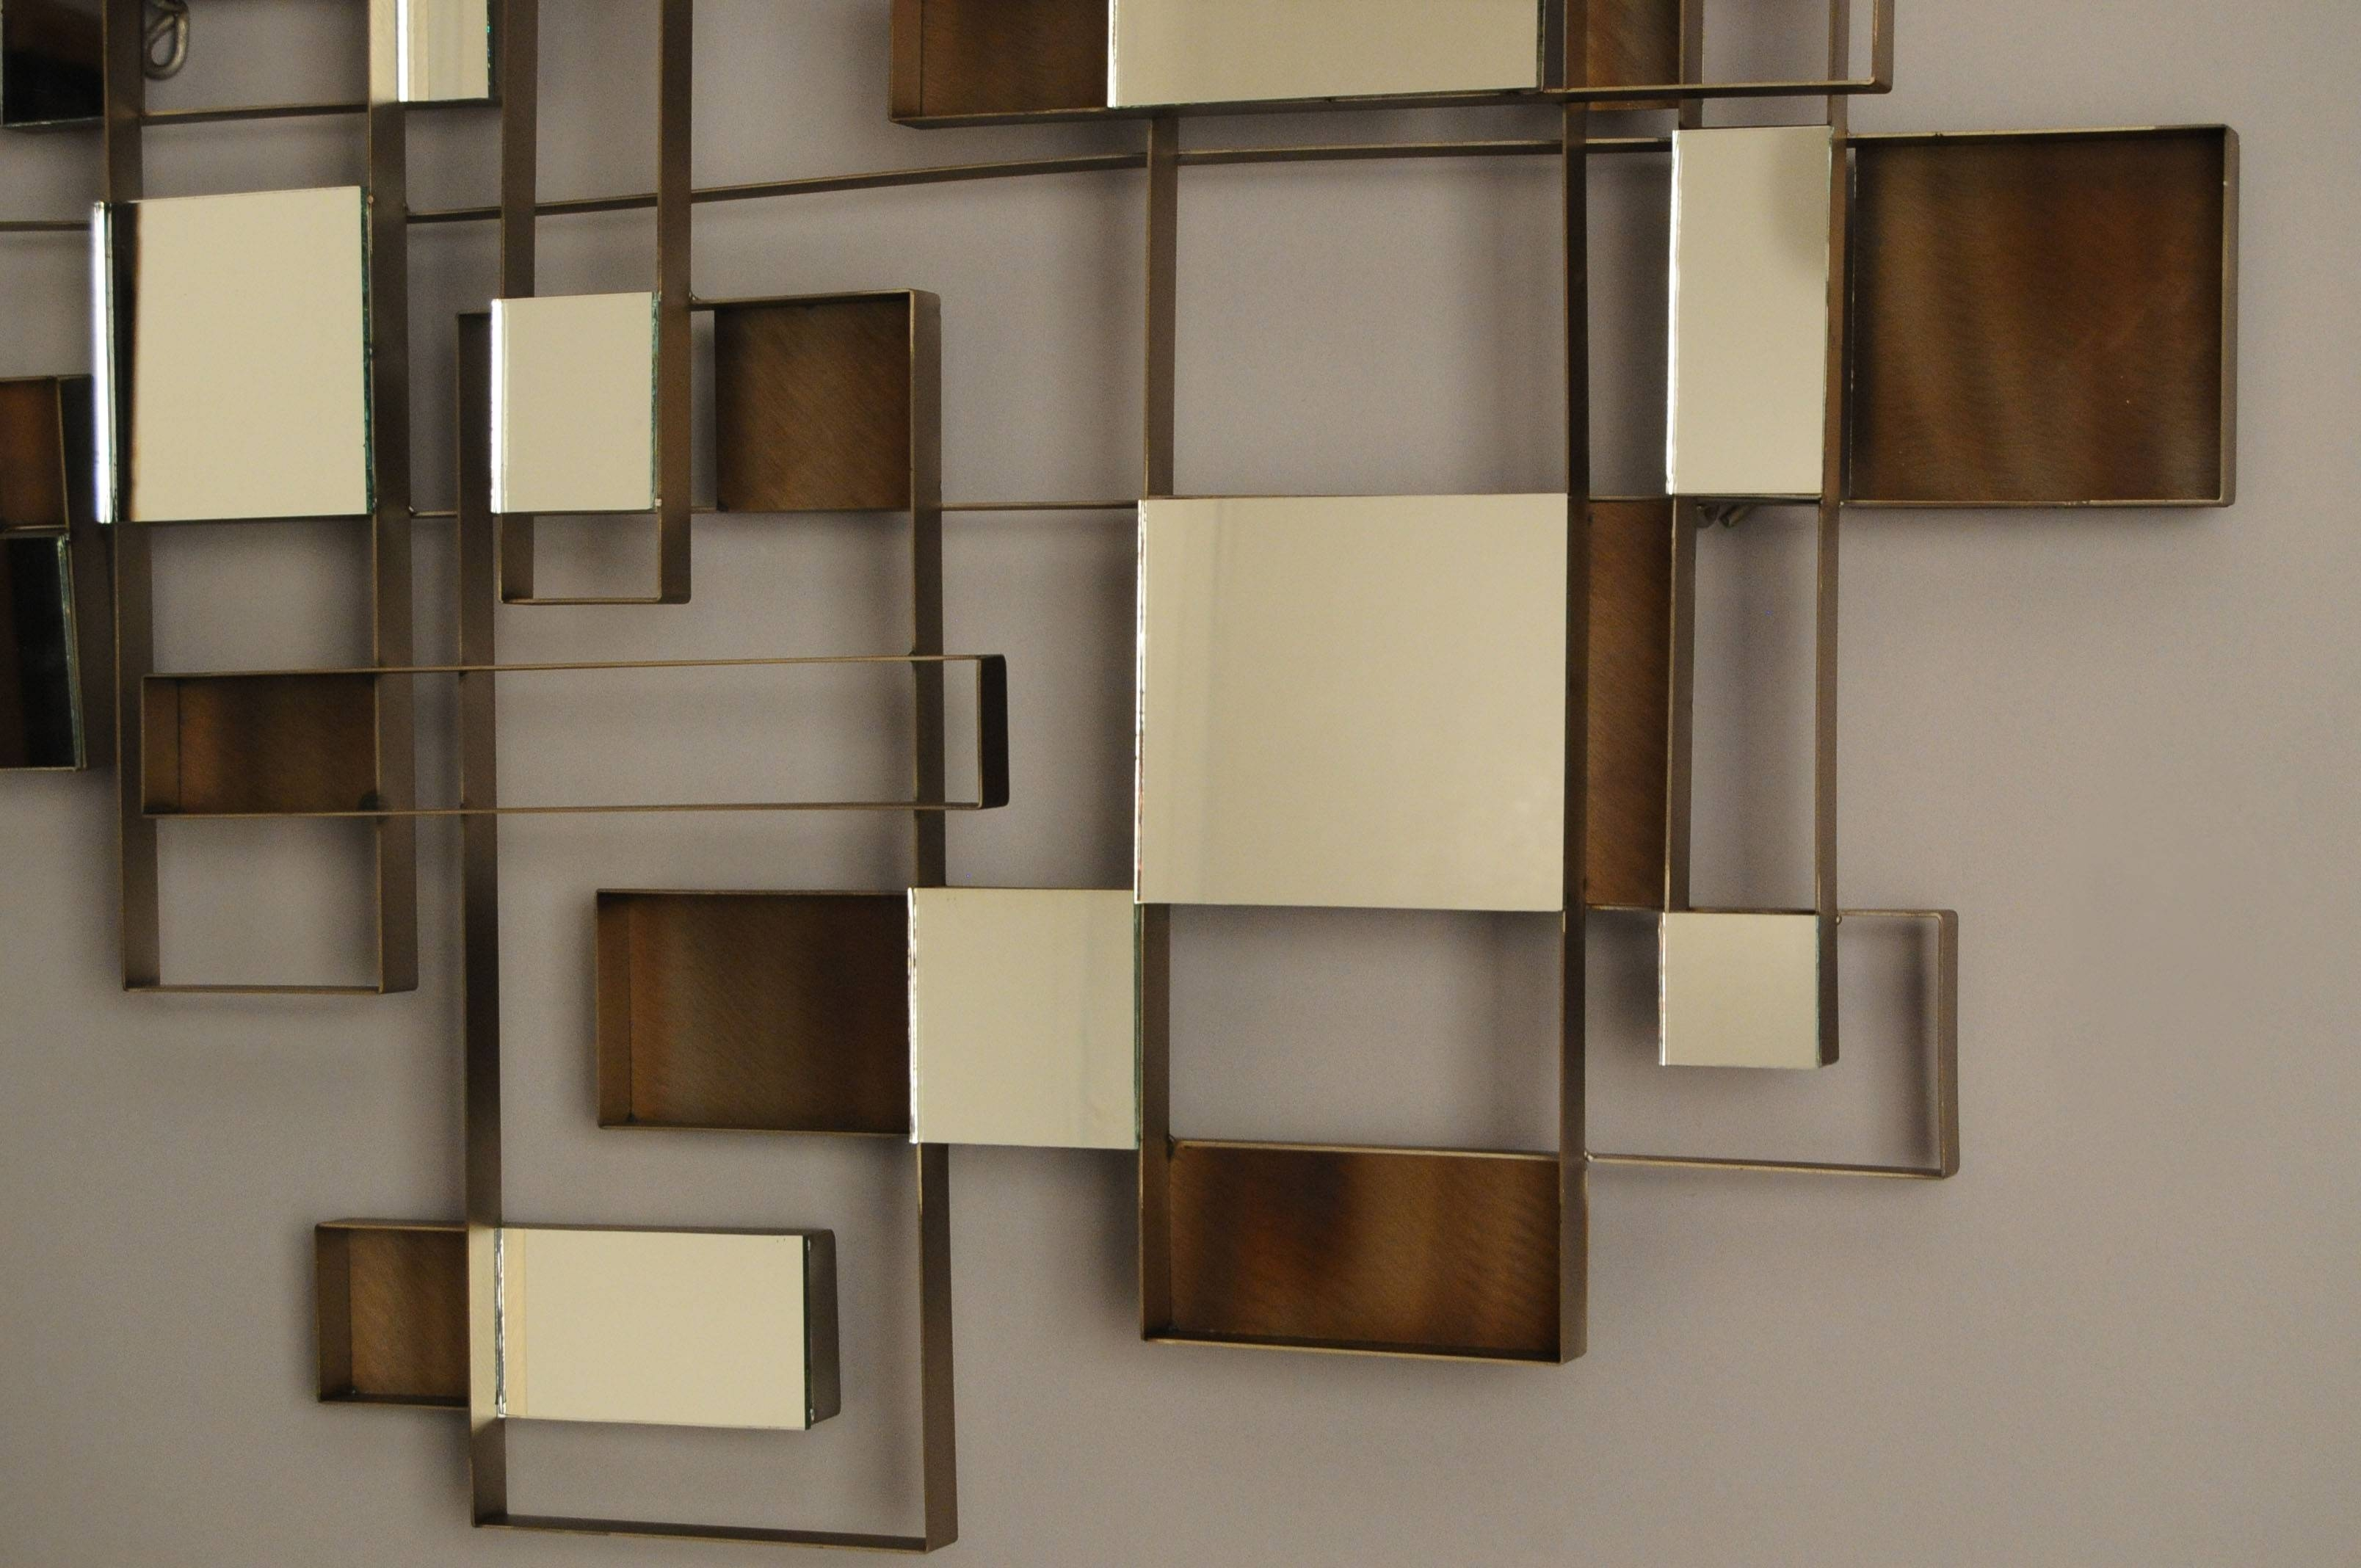 Wall Art Designs: Awesome Wall Art Mirror With Abstract Pattern In Most Up To Date Wall Art Mirrors Contemporary (View 4 of 20)